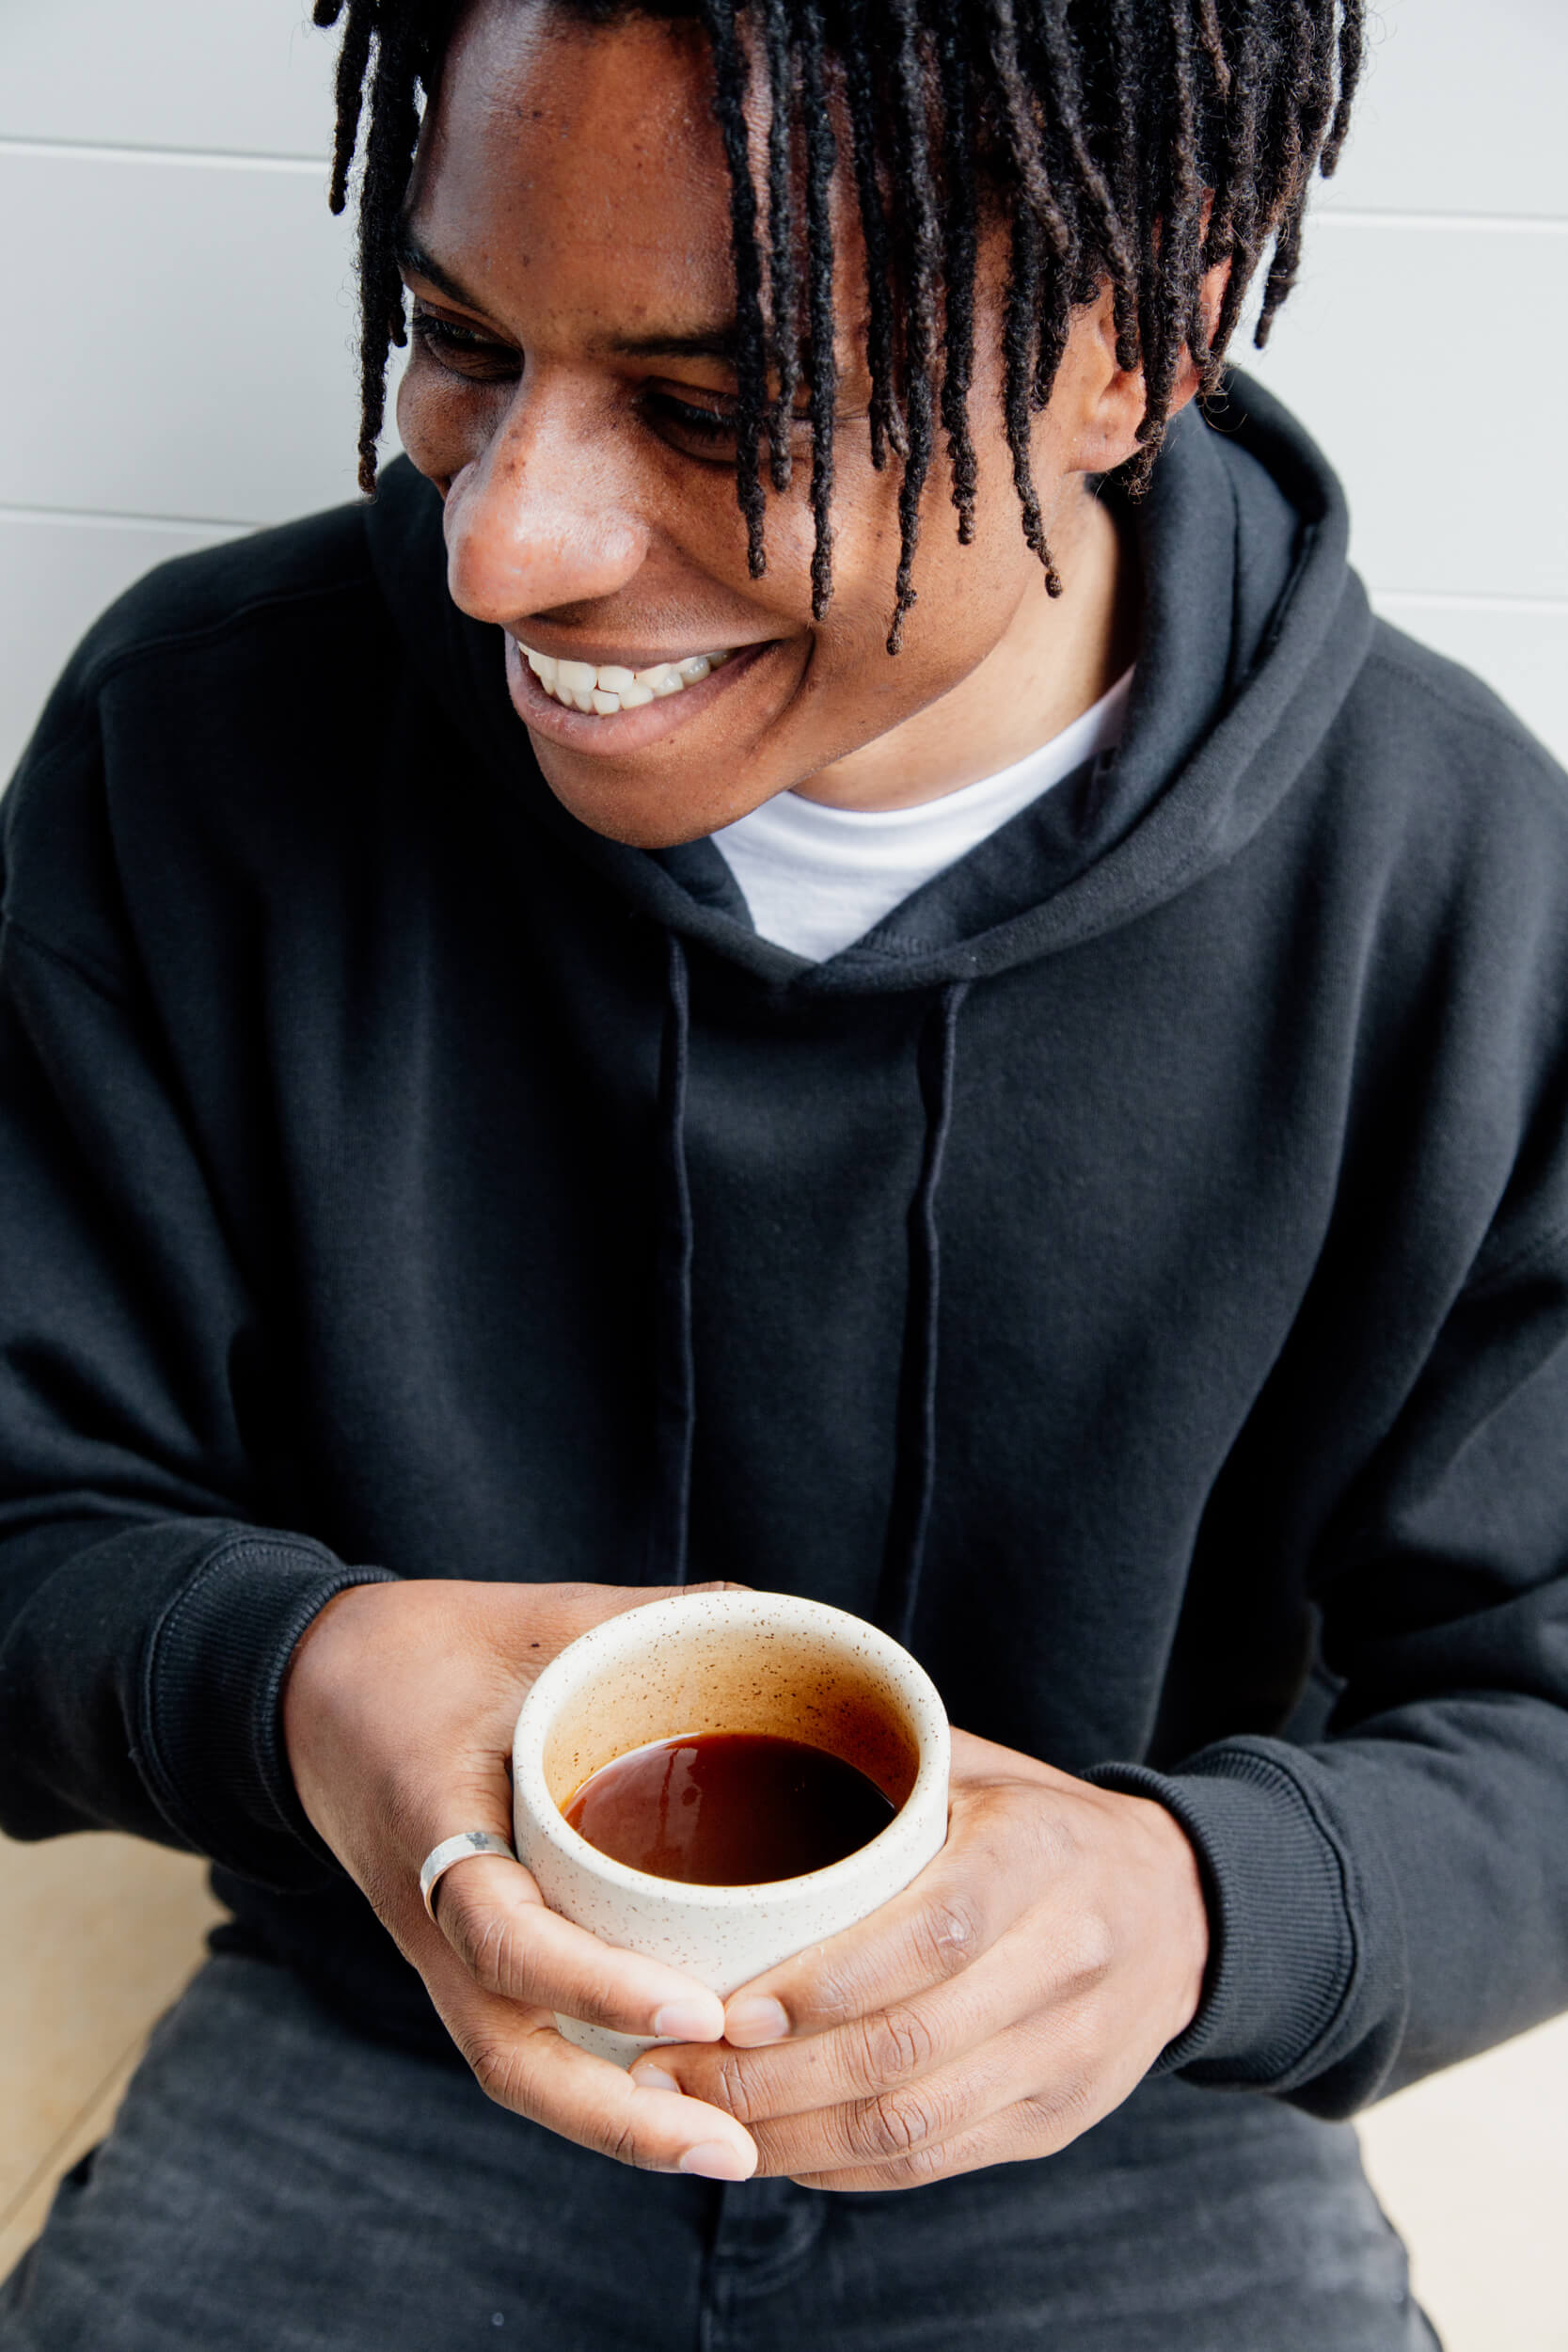 Man drinking coffee in a product photo for Citizen Clothing in Victoria BC.